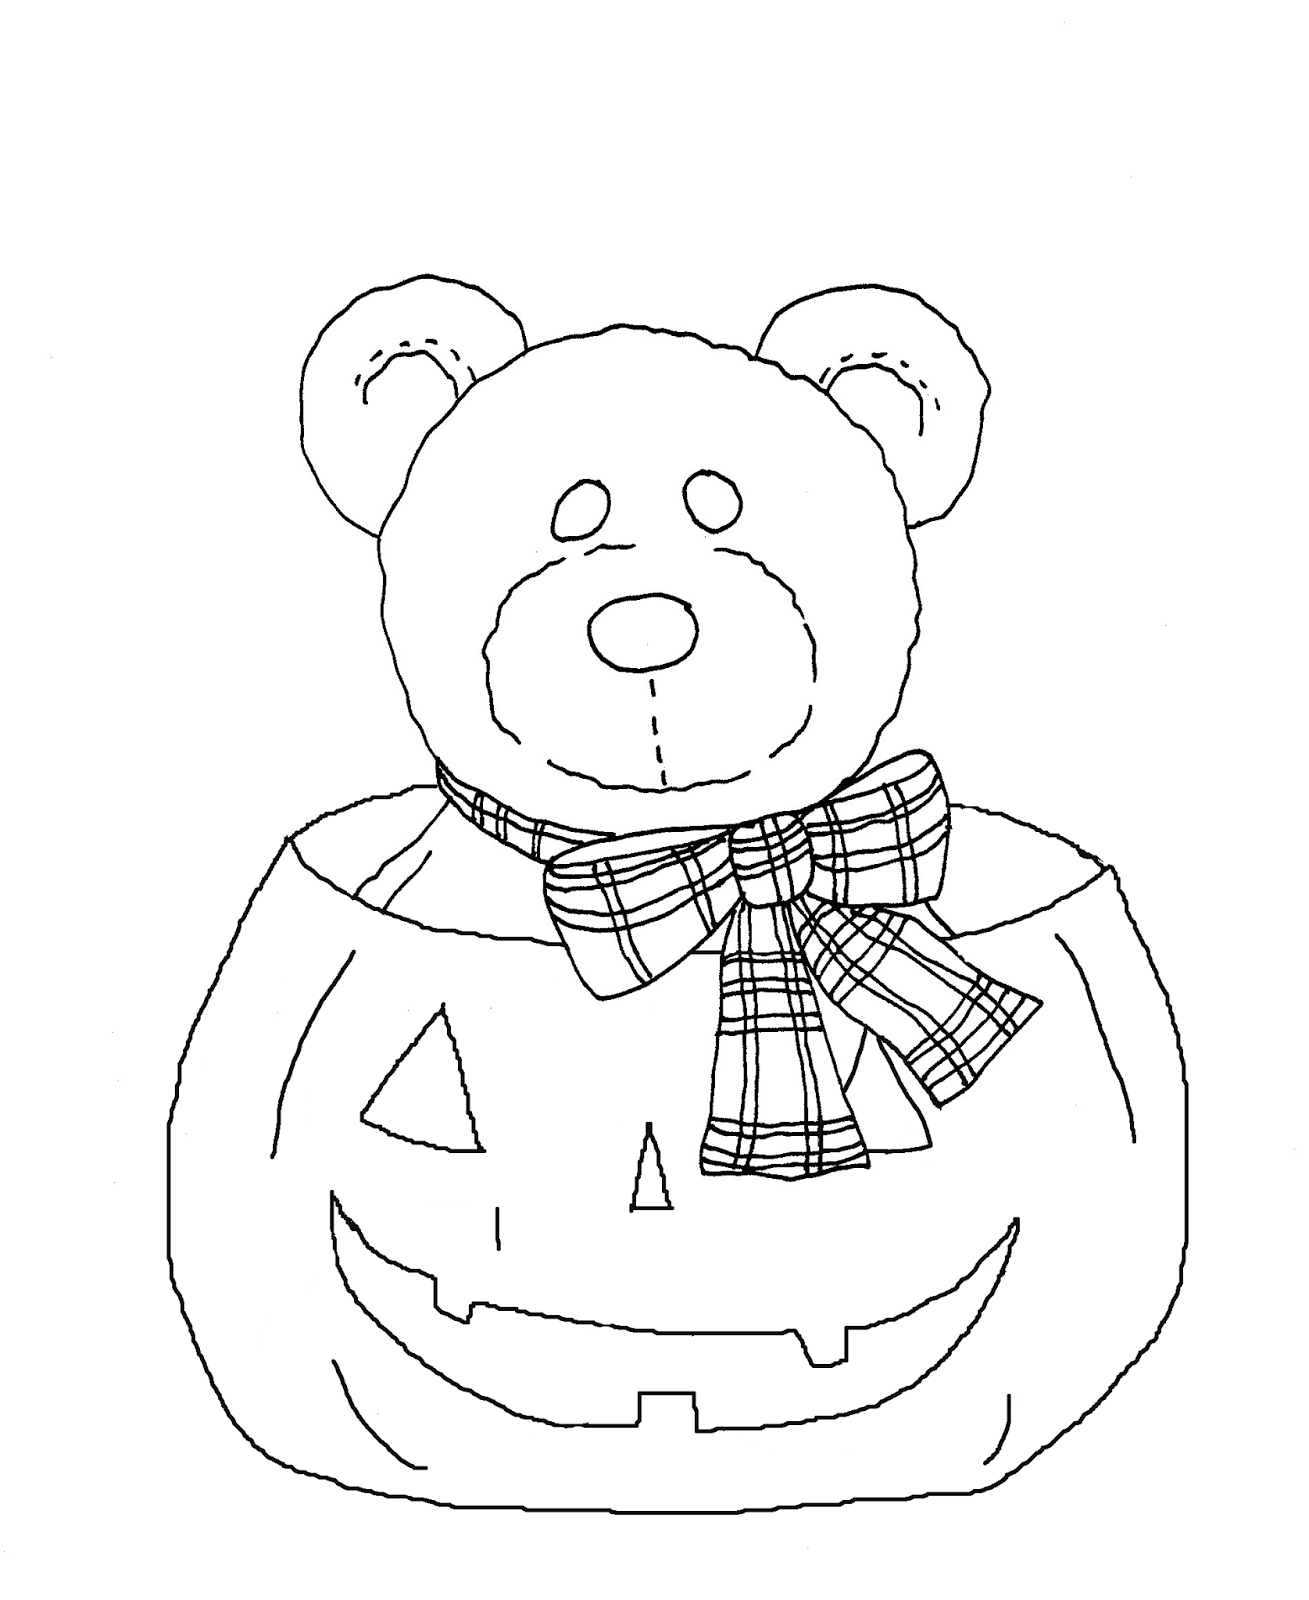 halloween teddy bear coloring pages | Free Dearie Dolls Digi Stamps: Teddy Bear Pumpkin